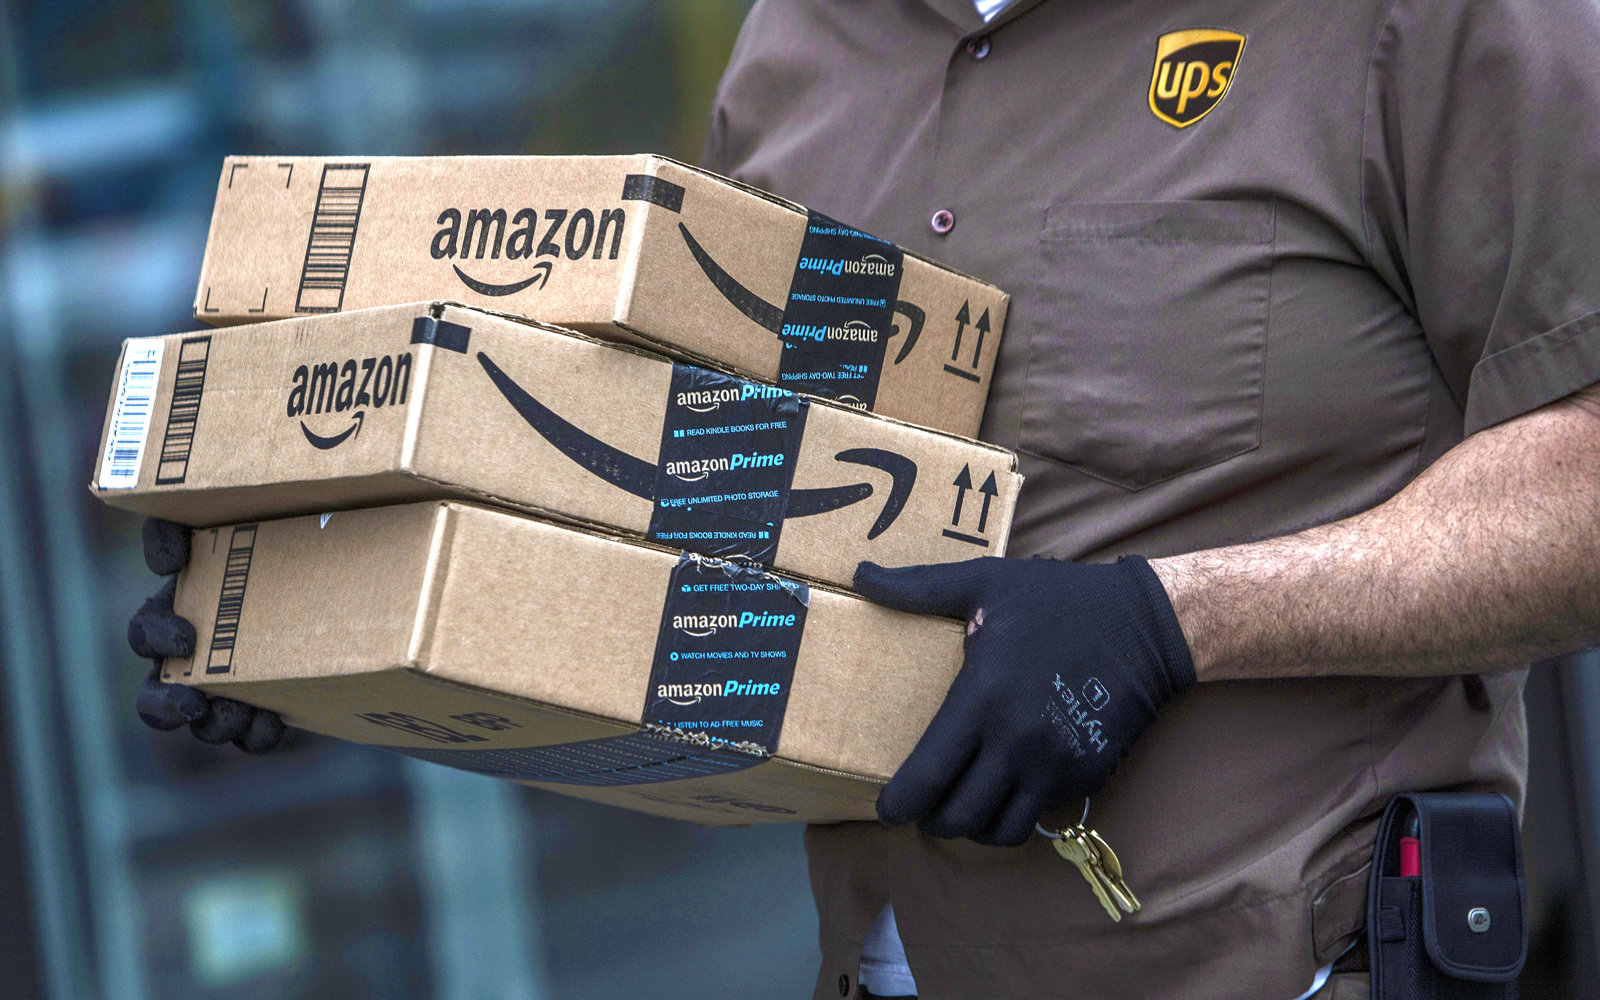 Amazon Prime free delivery expands to 8000 U.S. locations